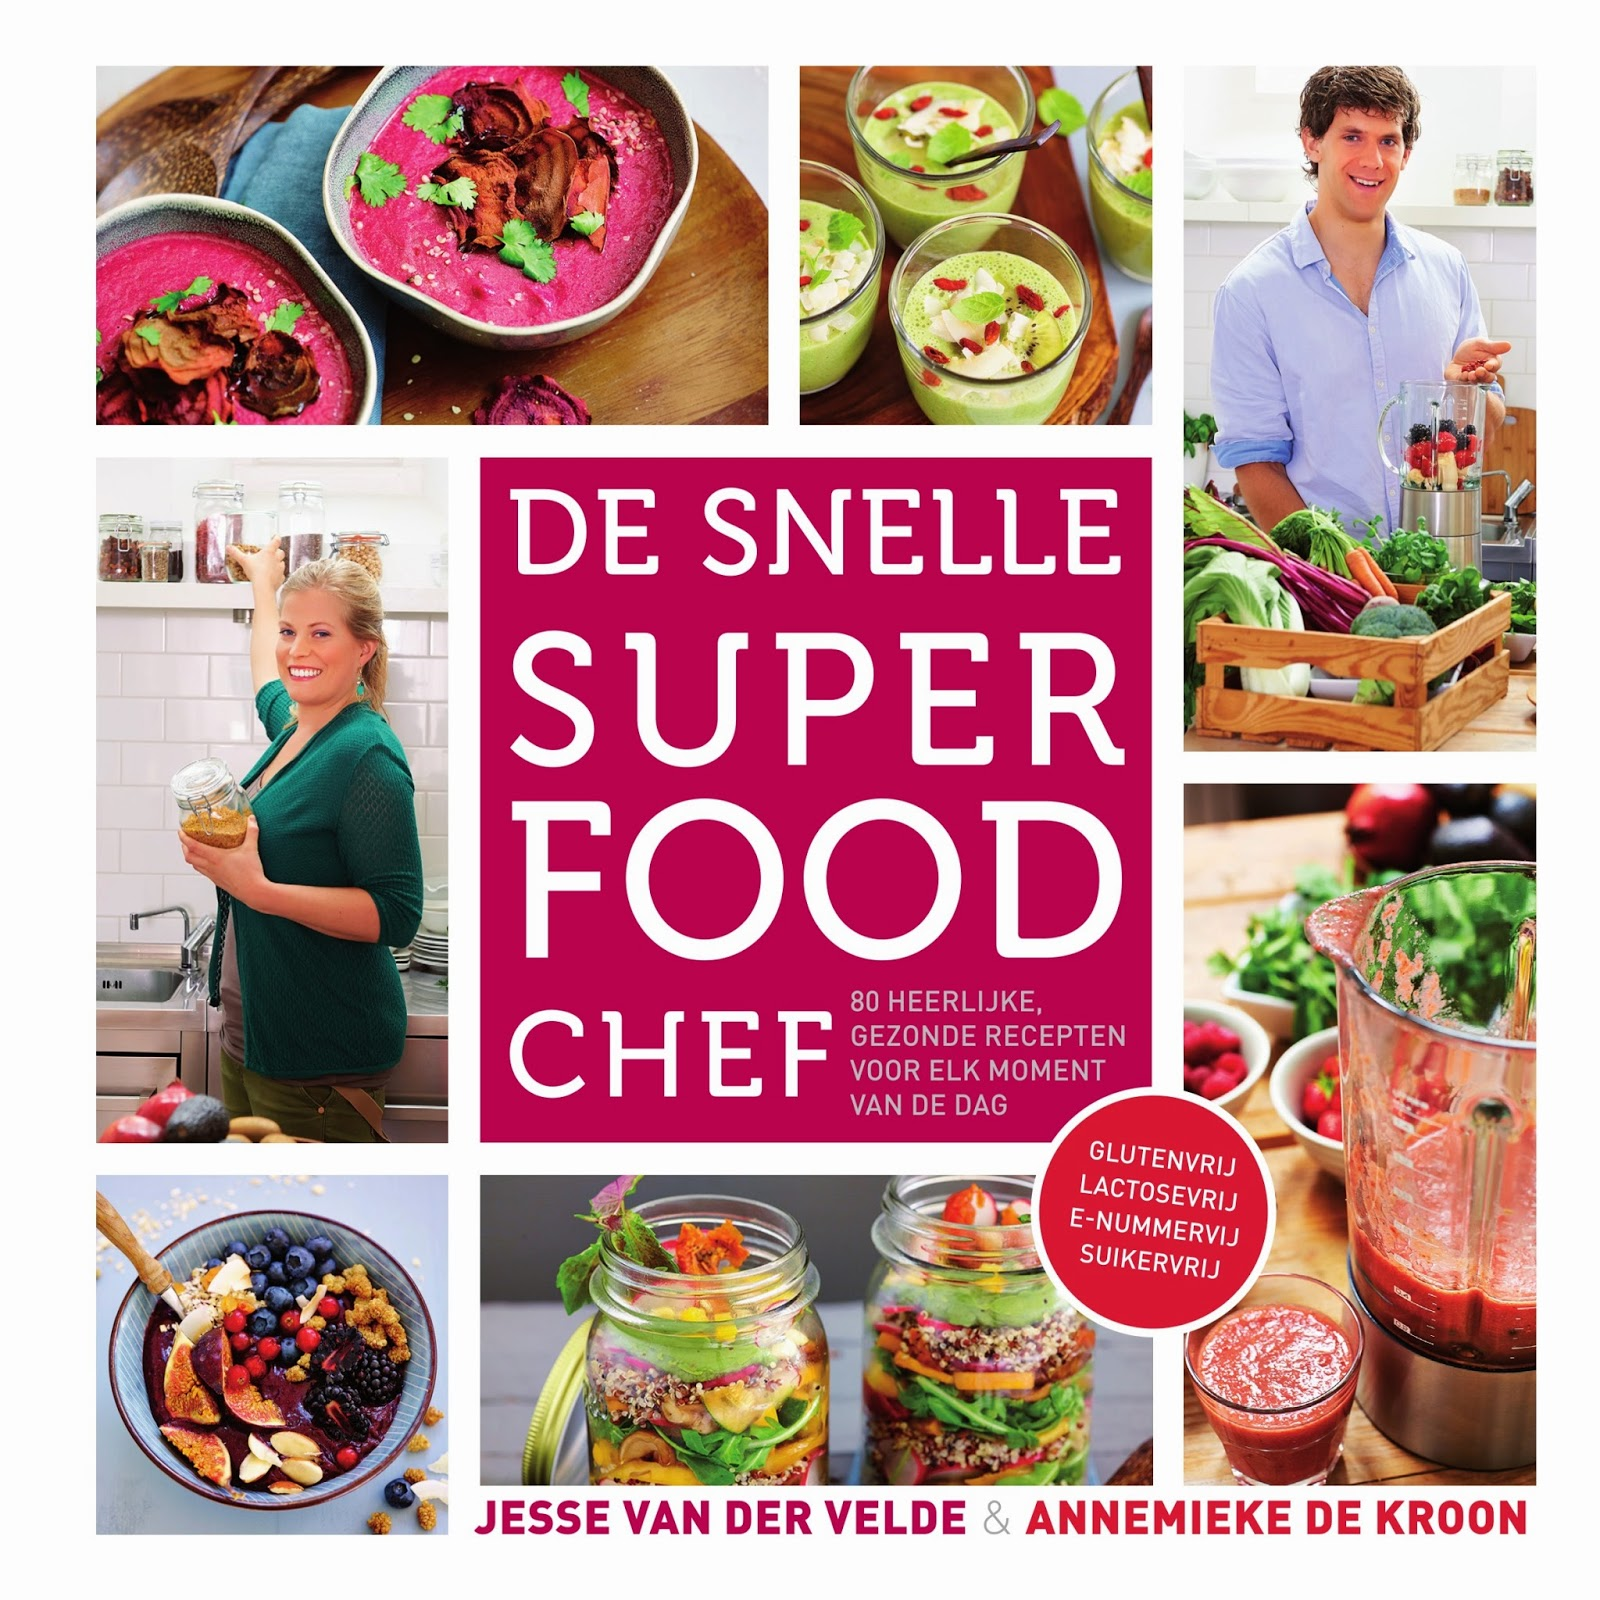 Snelle Superfood Chef